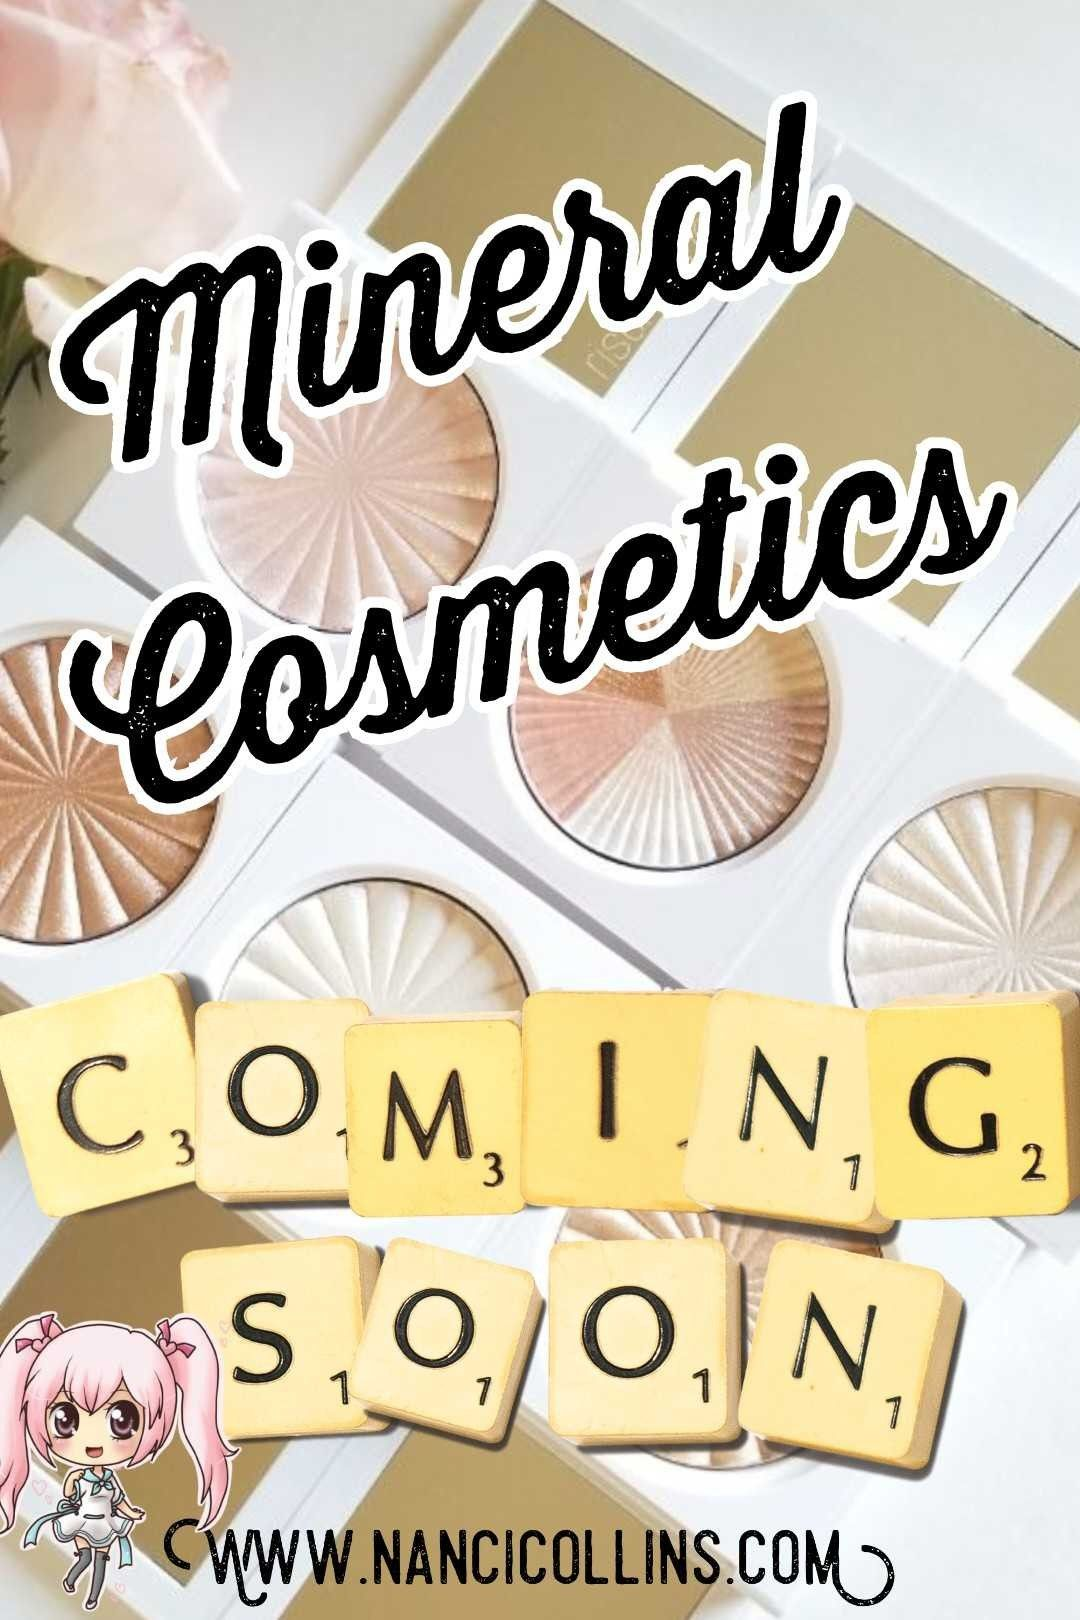 Want to know when? Cruelty free cosmetics, Mineral